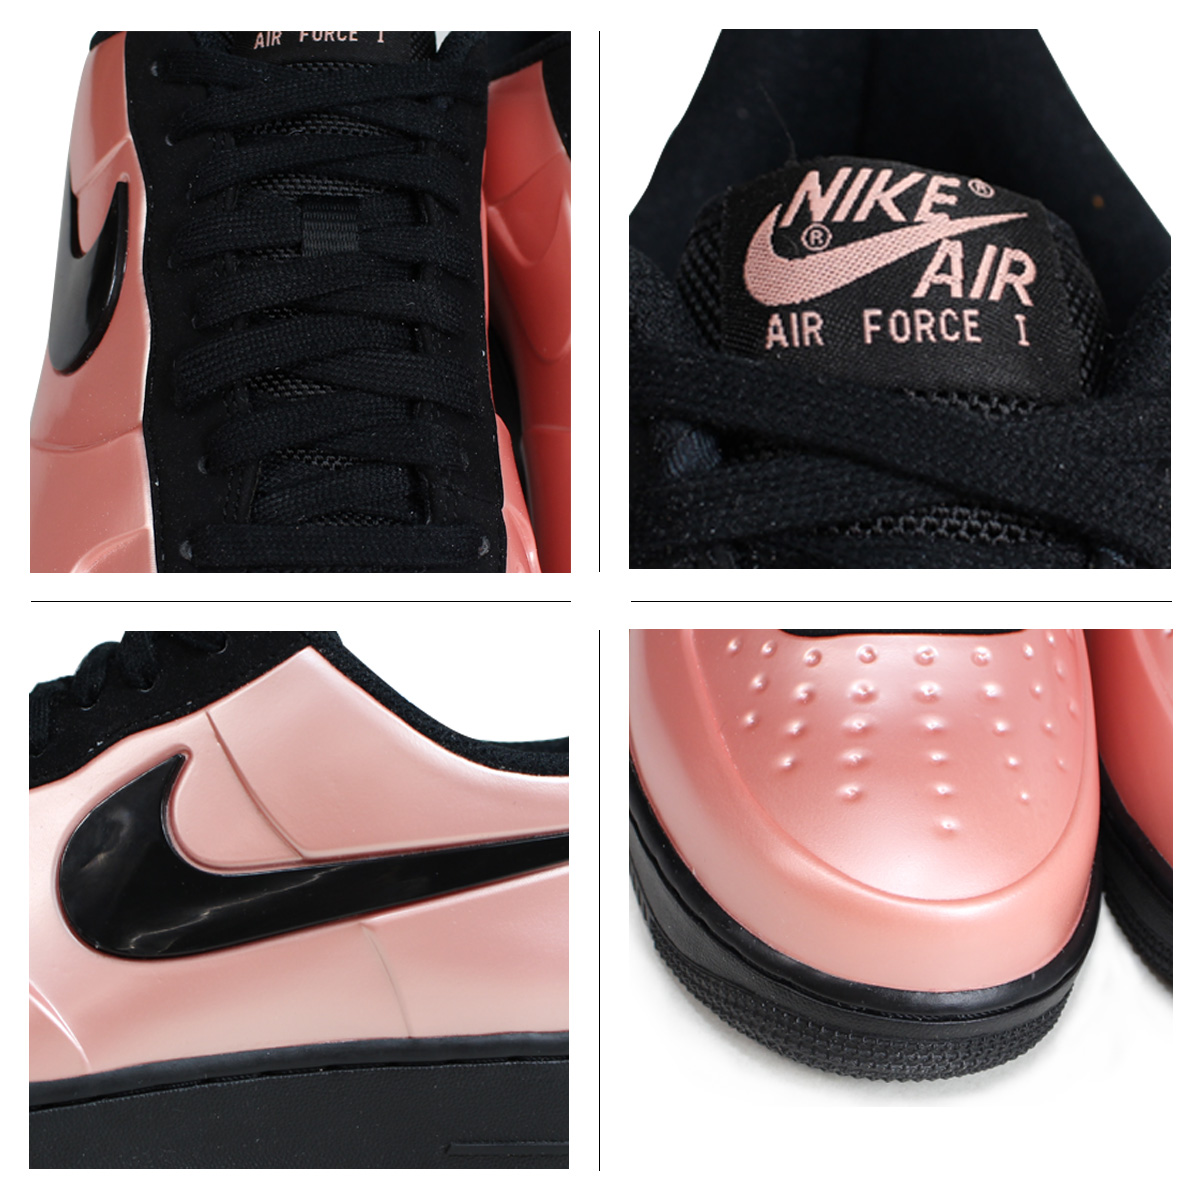 finest selection 5bc4a ca183 NIKE Nike air force 1 フォームポジットスニーカーメンズ AIR FORCE 1 FOAMPOSITE PRO CUPSOLE  AJ3664-600 pink